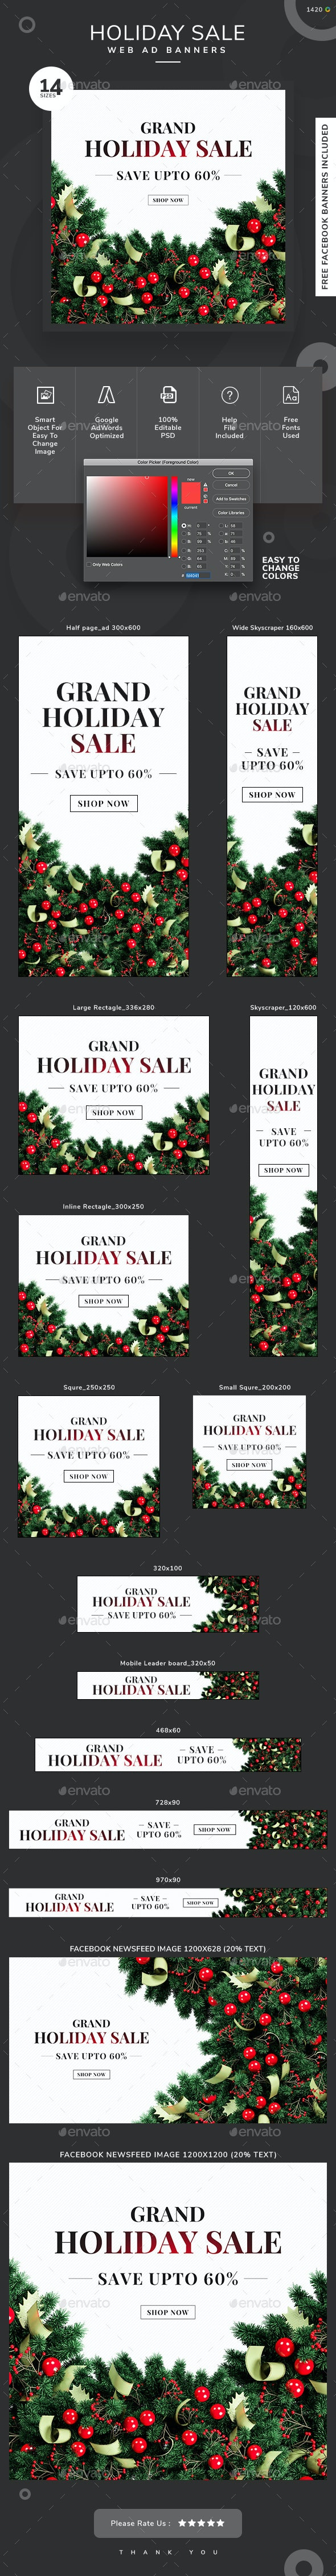 Holiday Sale Web Banner Set - Banners & Ads Web Elements